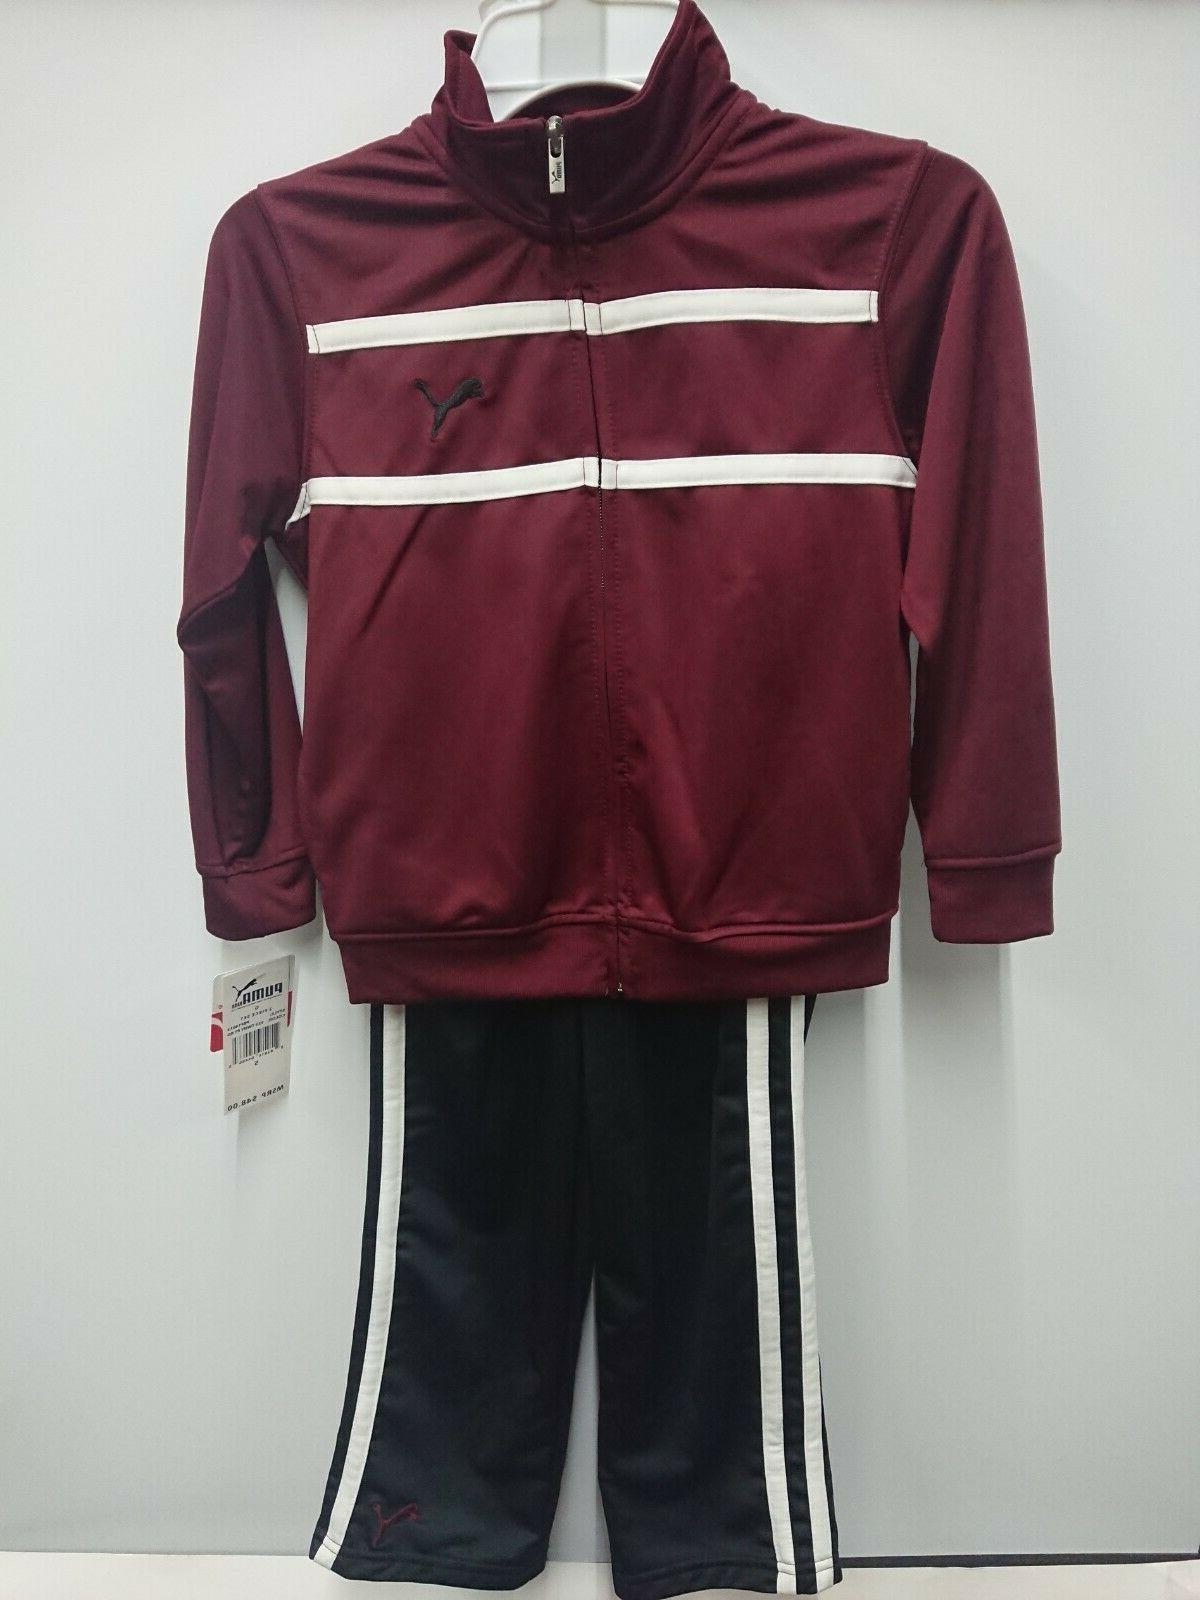 PUMA Clothes 2 Piece Lot New with Tag